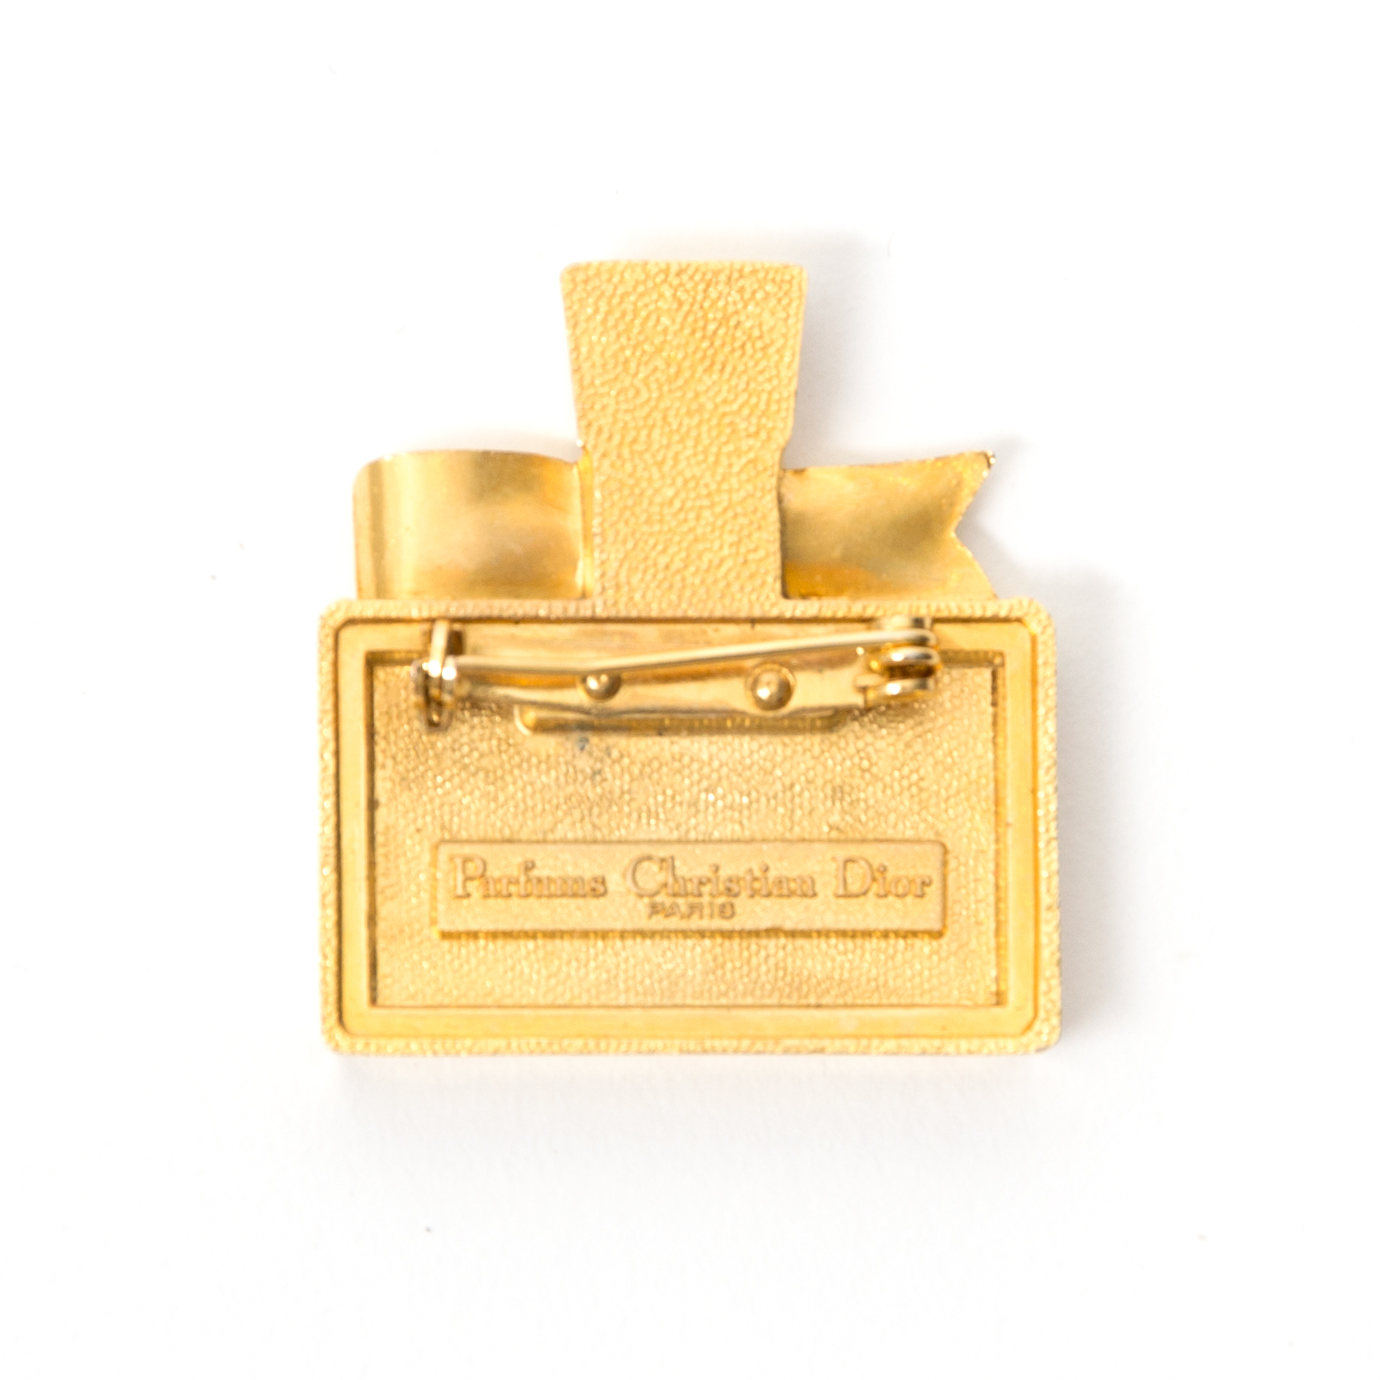 Authentic Miss Dior brooch safe and secure online shopping LabelLOV veilig vintage shoppen webshop